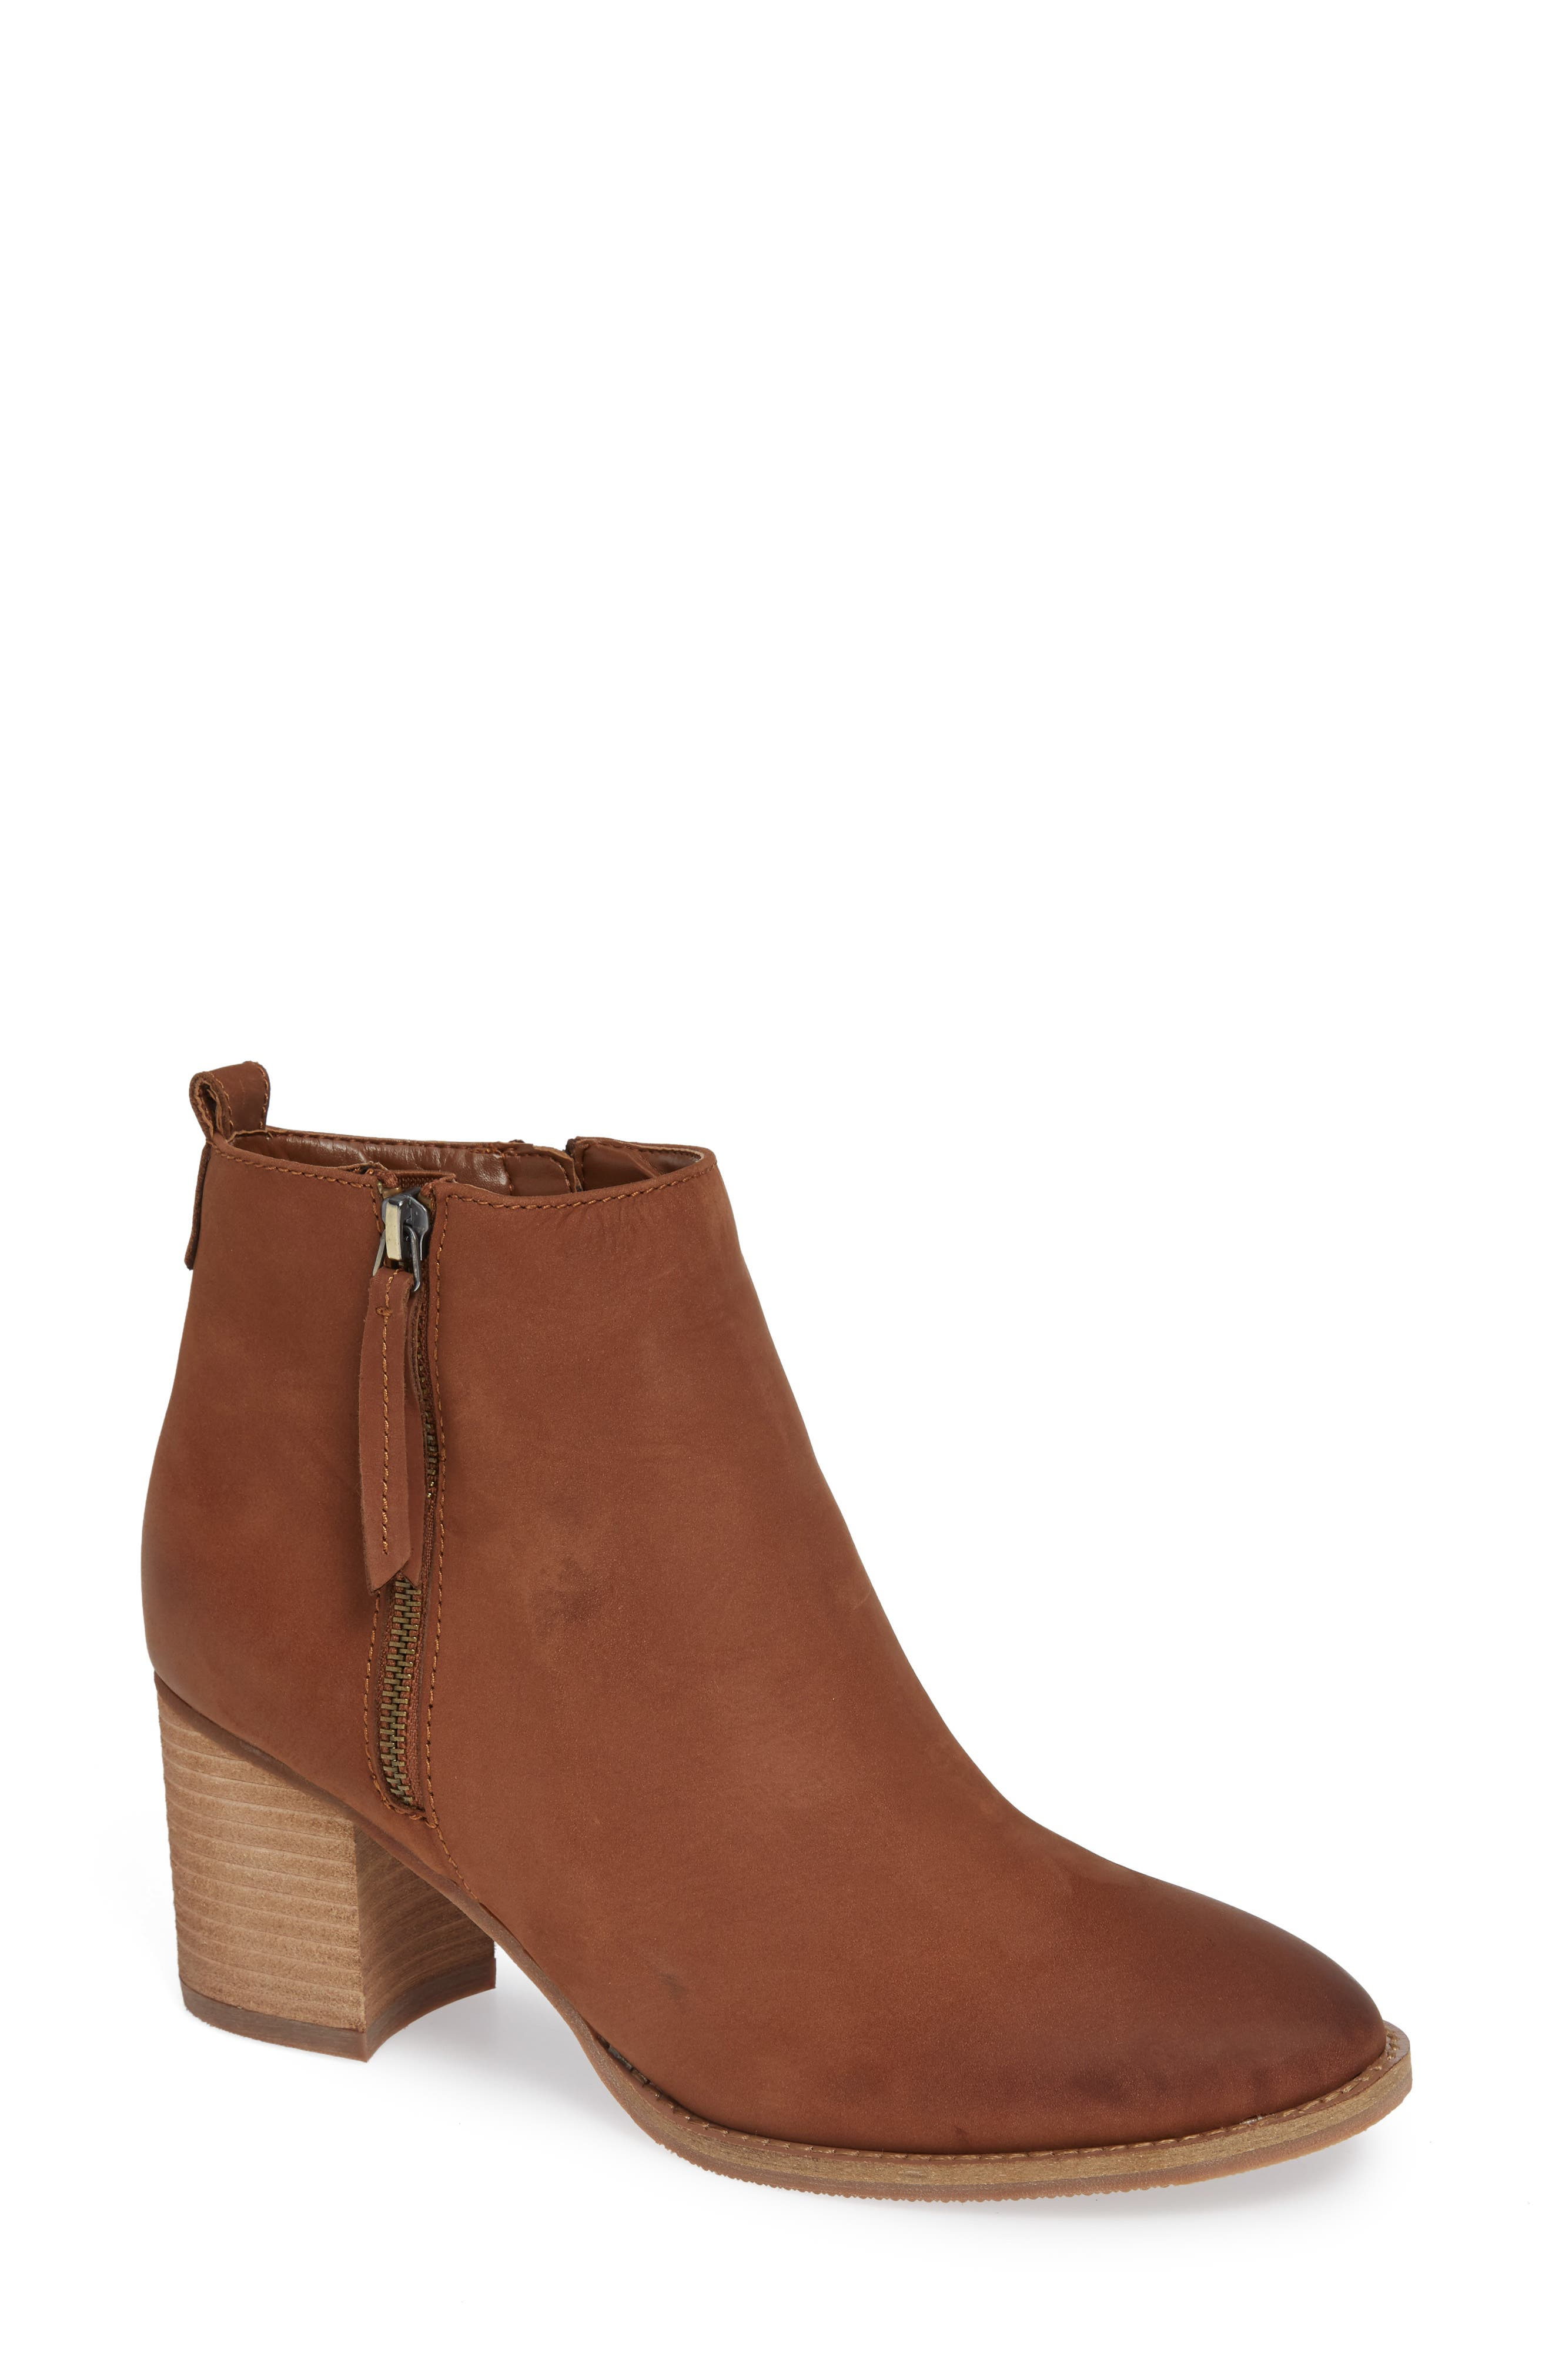 Nova Waterproof Bootie,                         Main,                         color, COGNAC NUBUCK